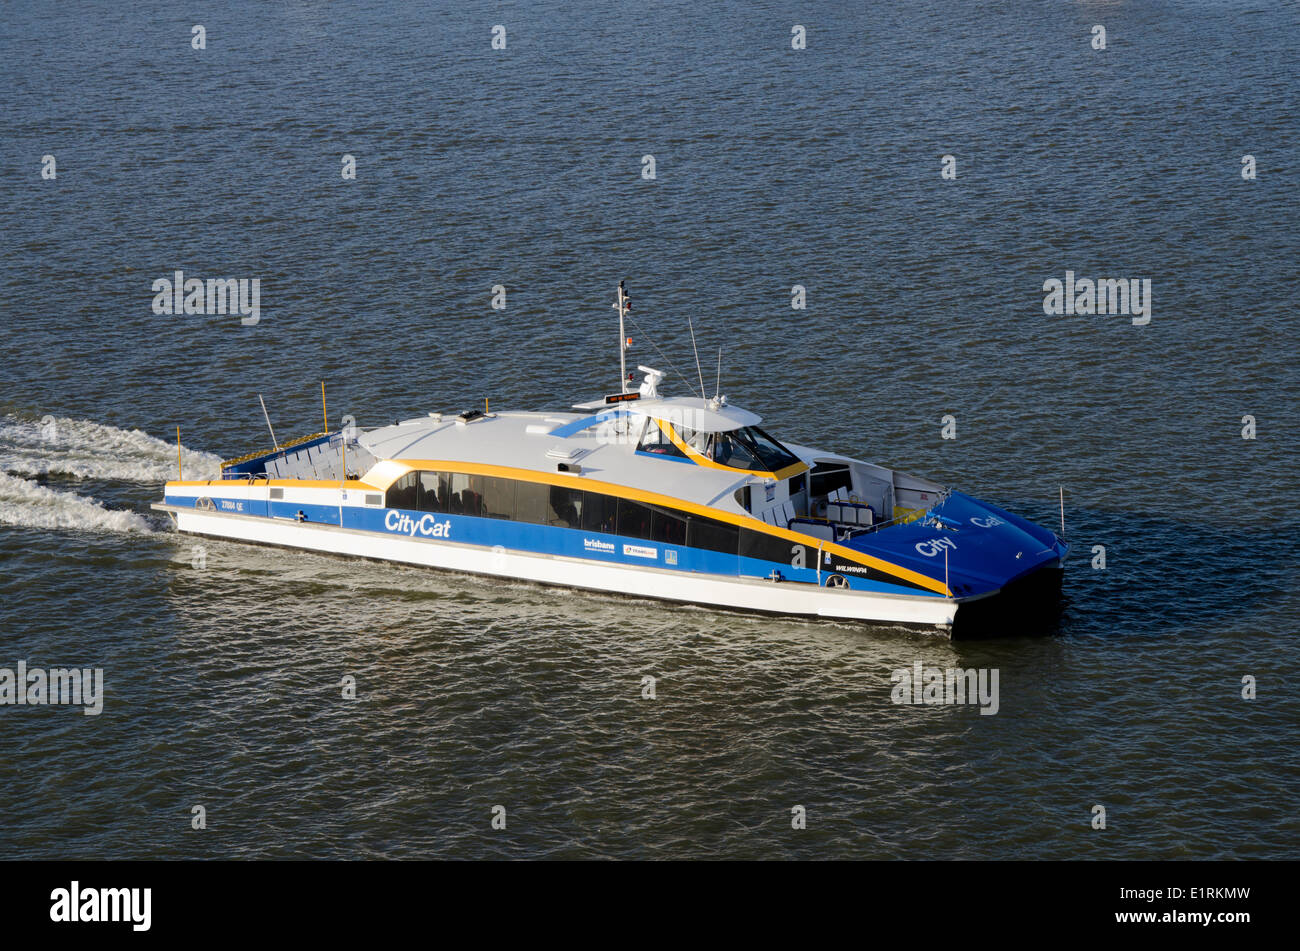 Australia, Queensland, Brisbane. City Cat high-speed city water taxi on the Brisbane River. - Stock Image